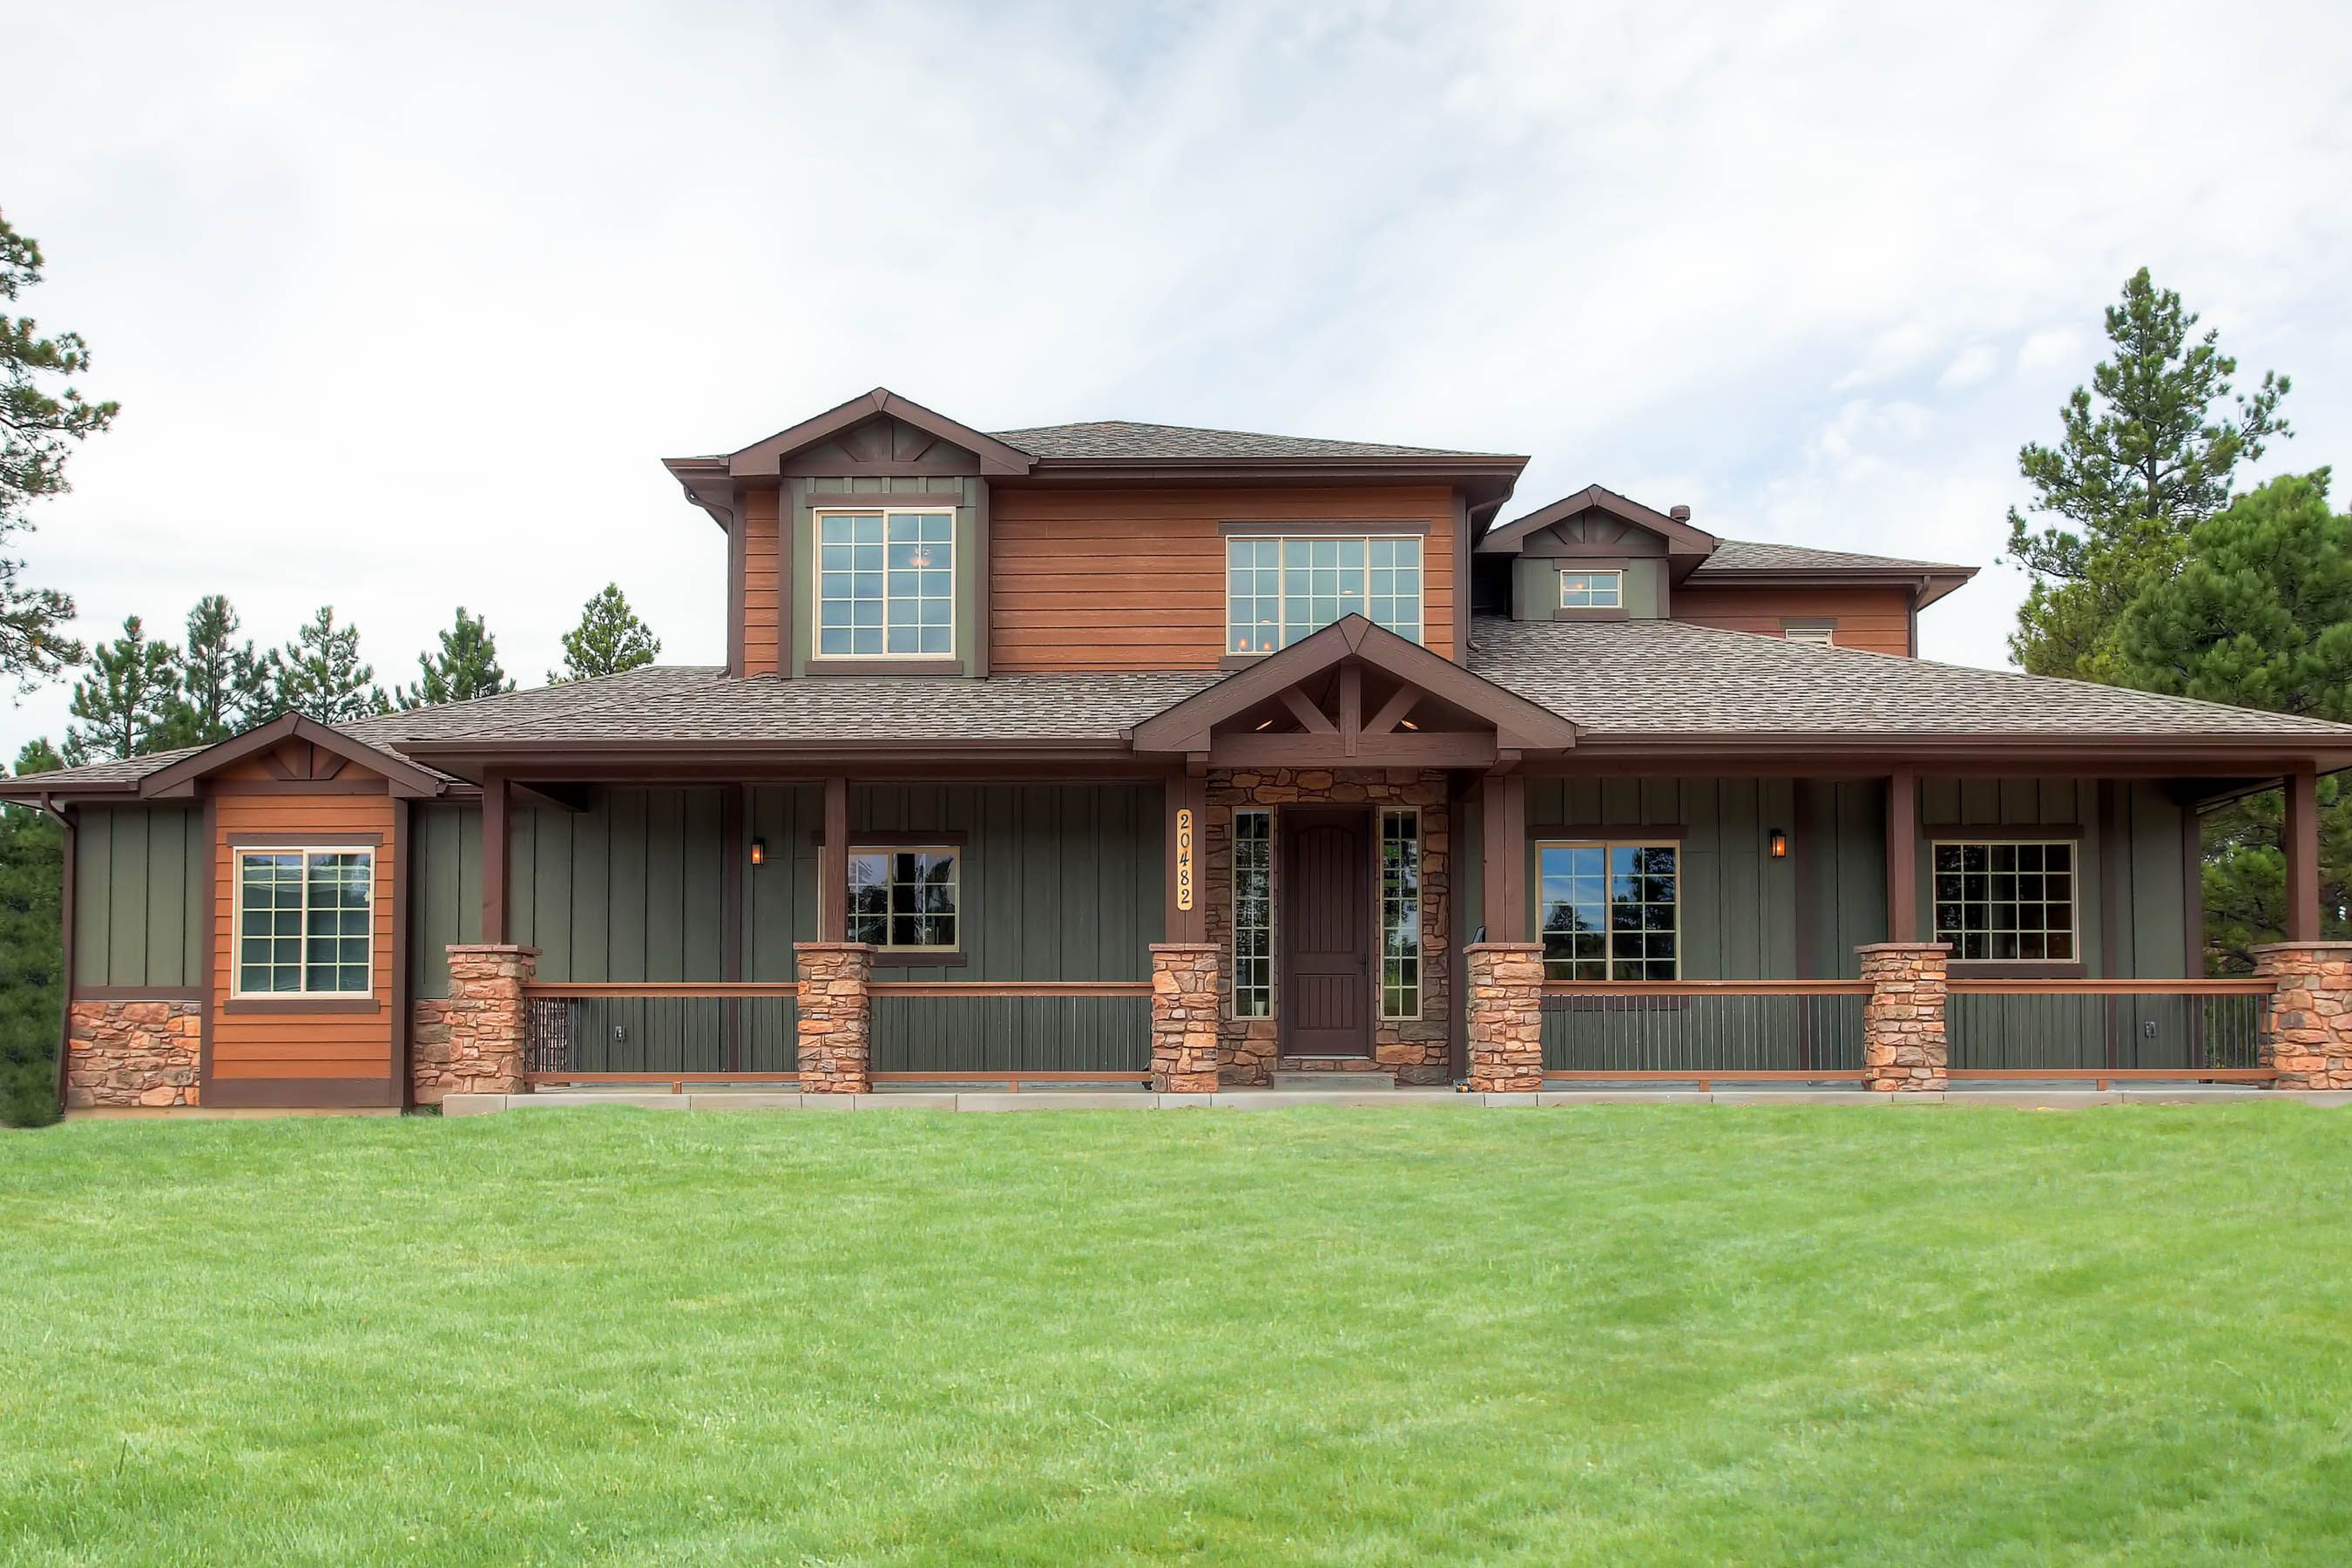 Craftsman design with front porch